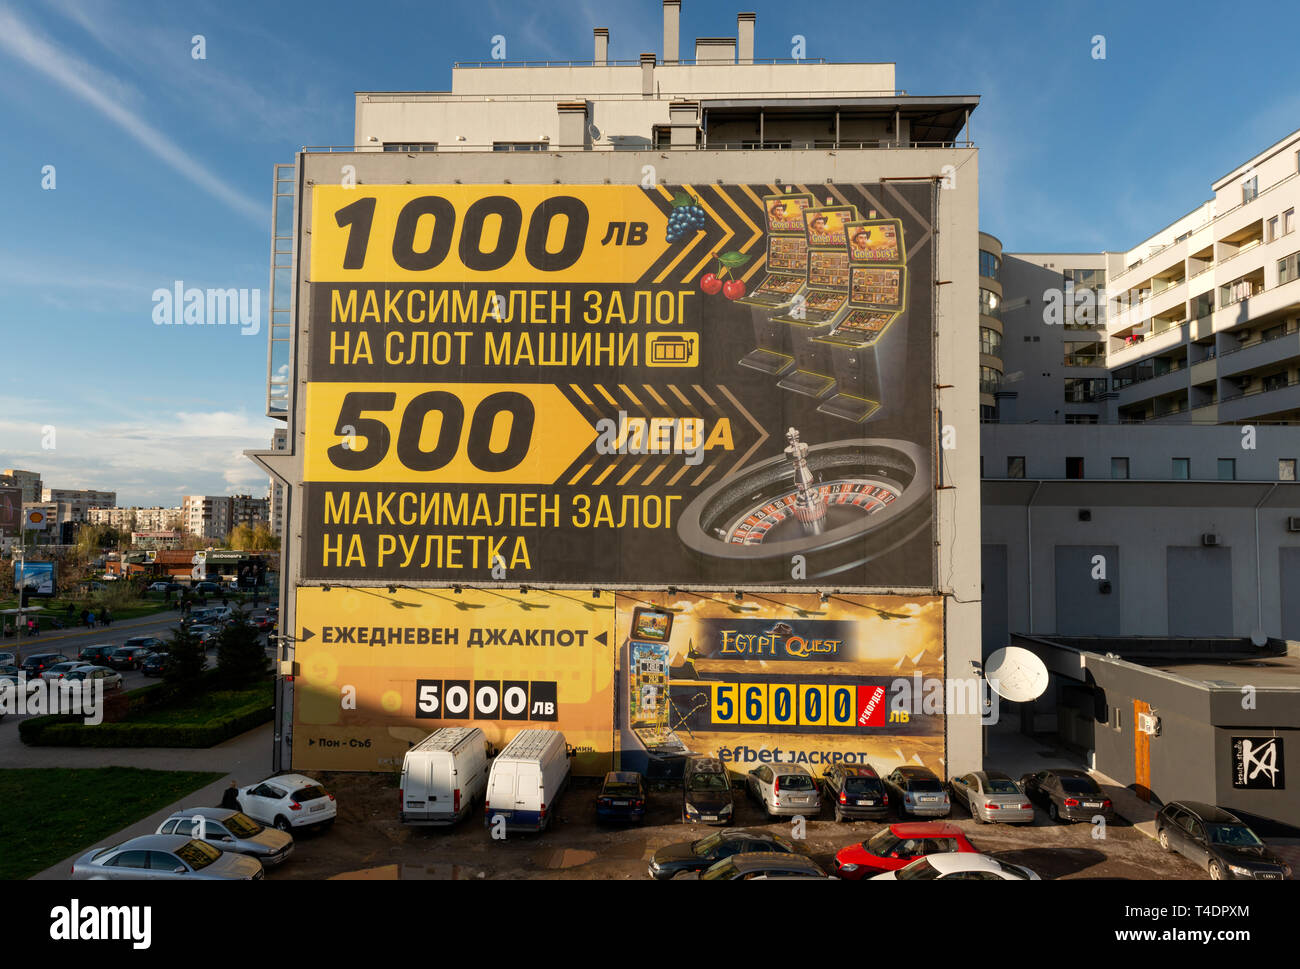 Eastern European absurd urban city surroundings. Cars parked in the dirt by a casino wall advertisement promising big winnings in Sofia Bulgaria. - Stock Image